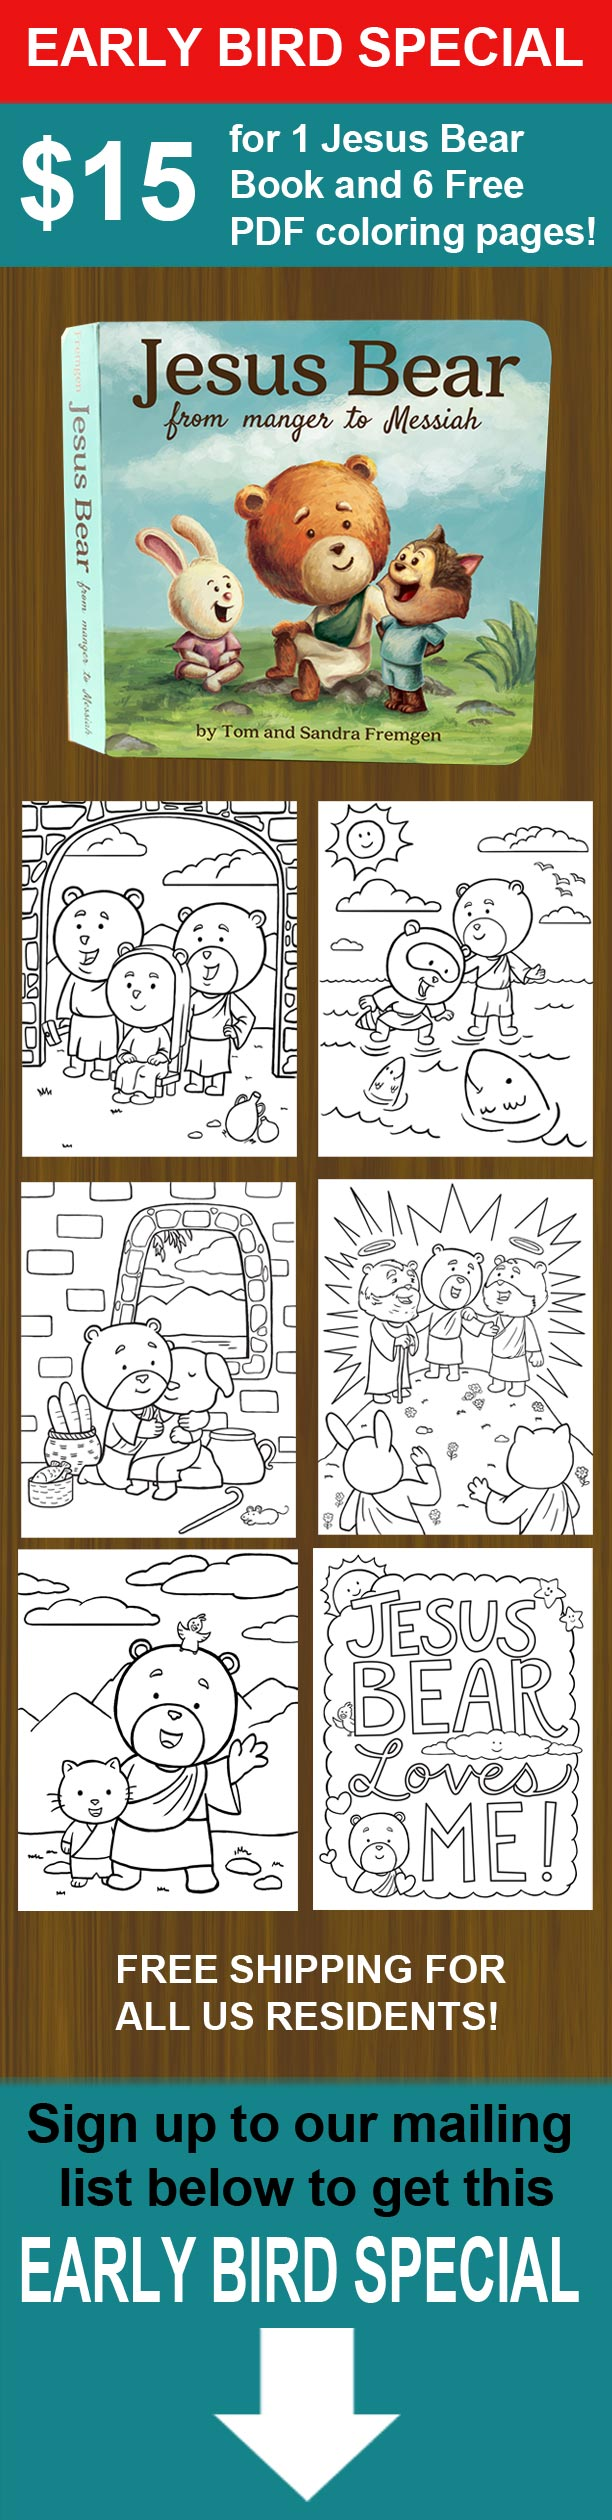 Jesus-Bear-book-and-coloring-pages-long.jpg